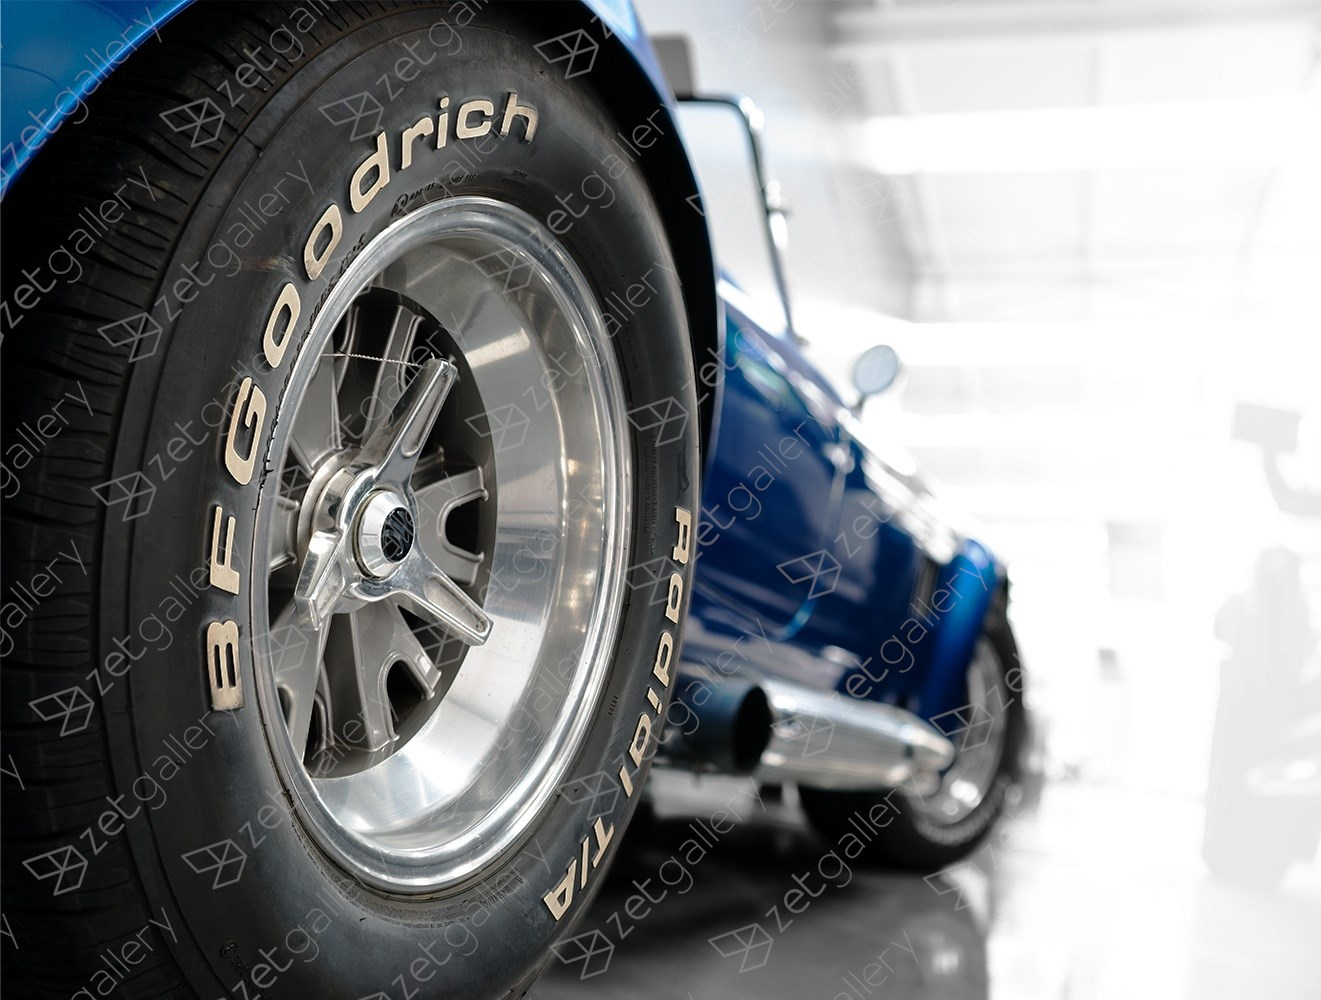 Shelby Cobra 427 01, Fotografía Digital Vanguardia original por Yggdrasil Art